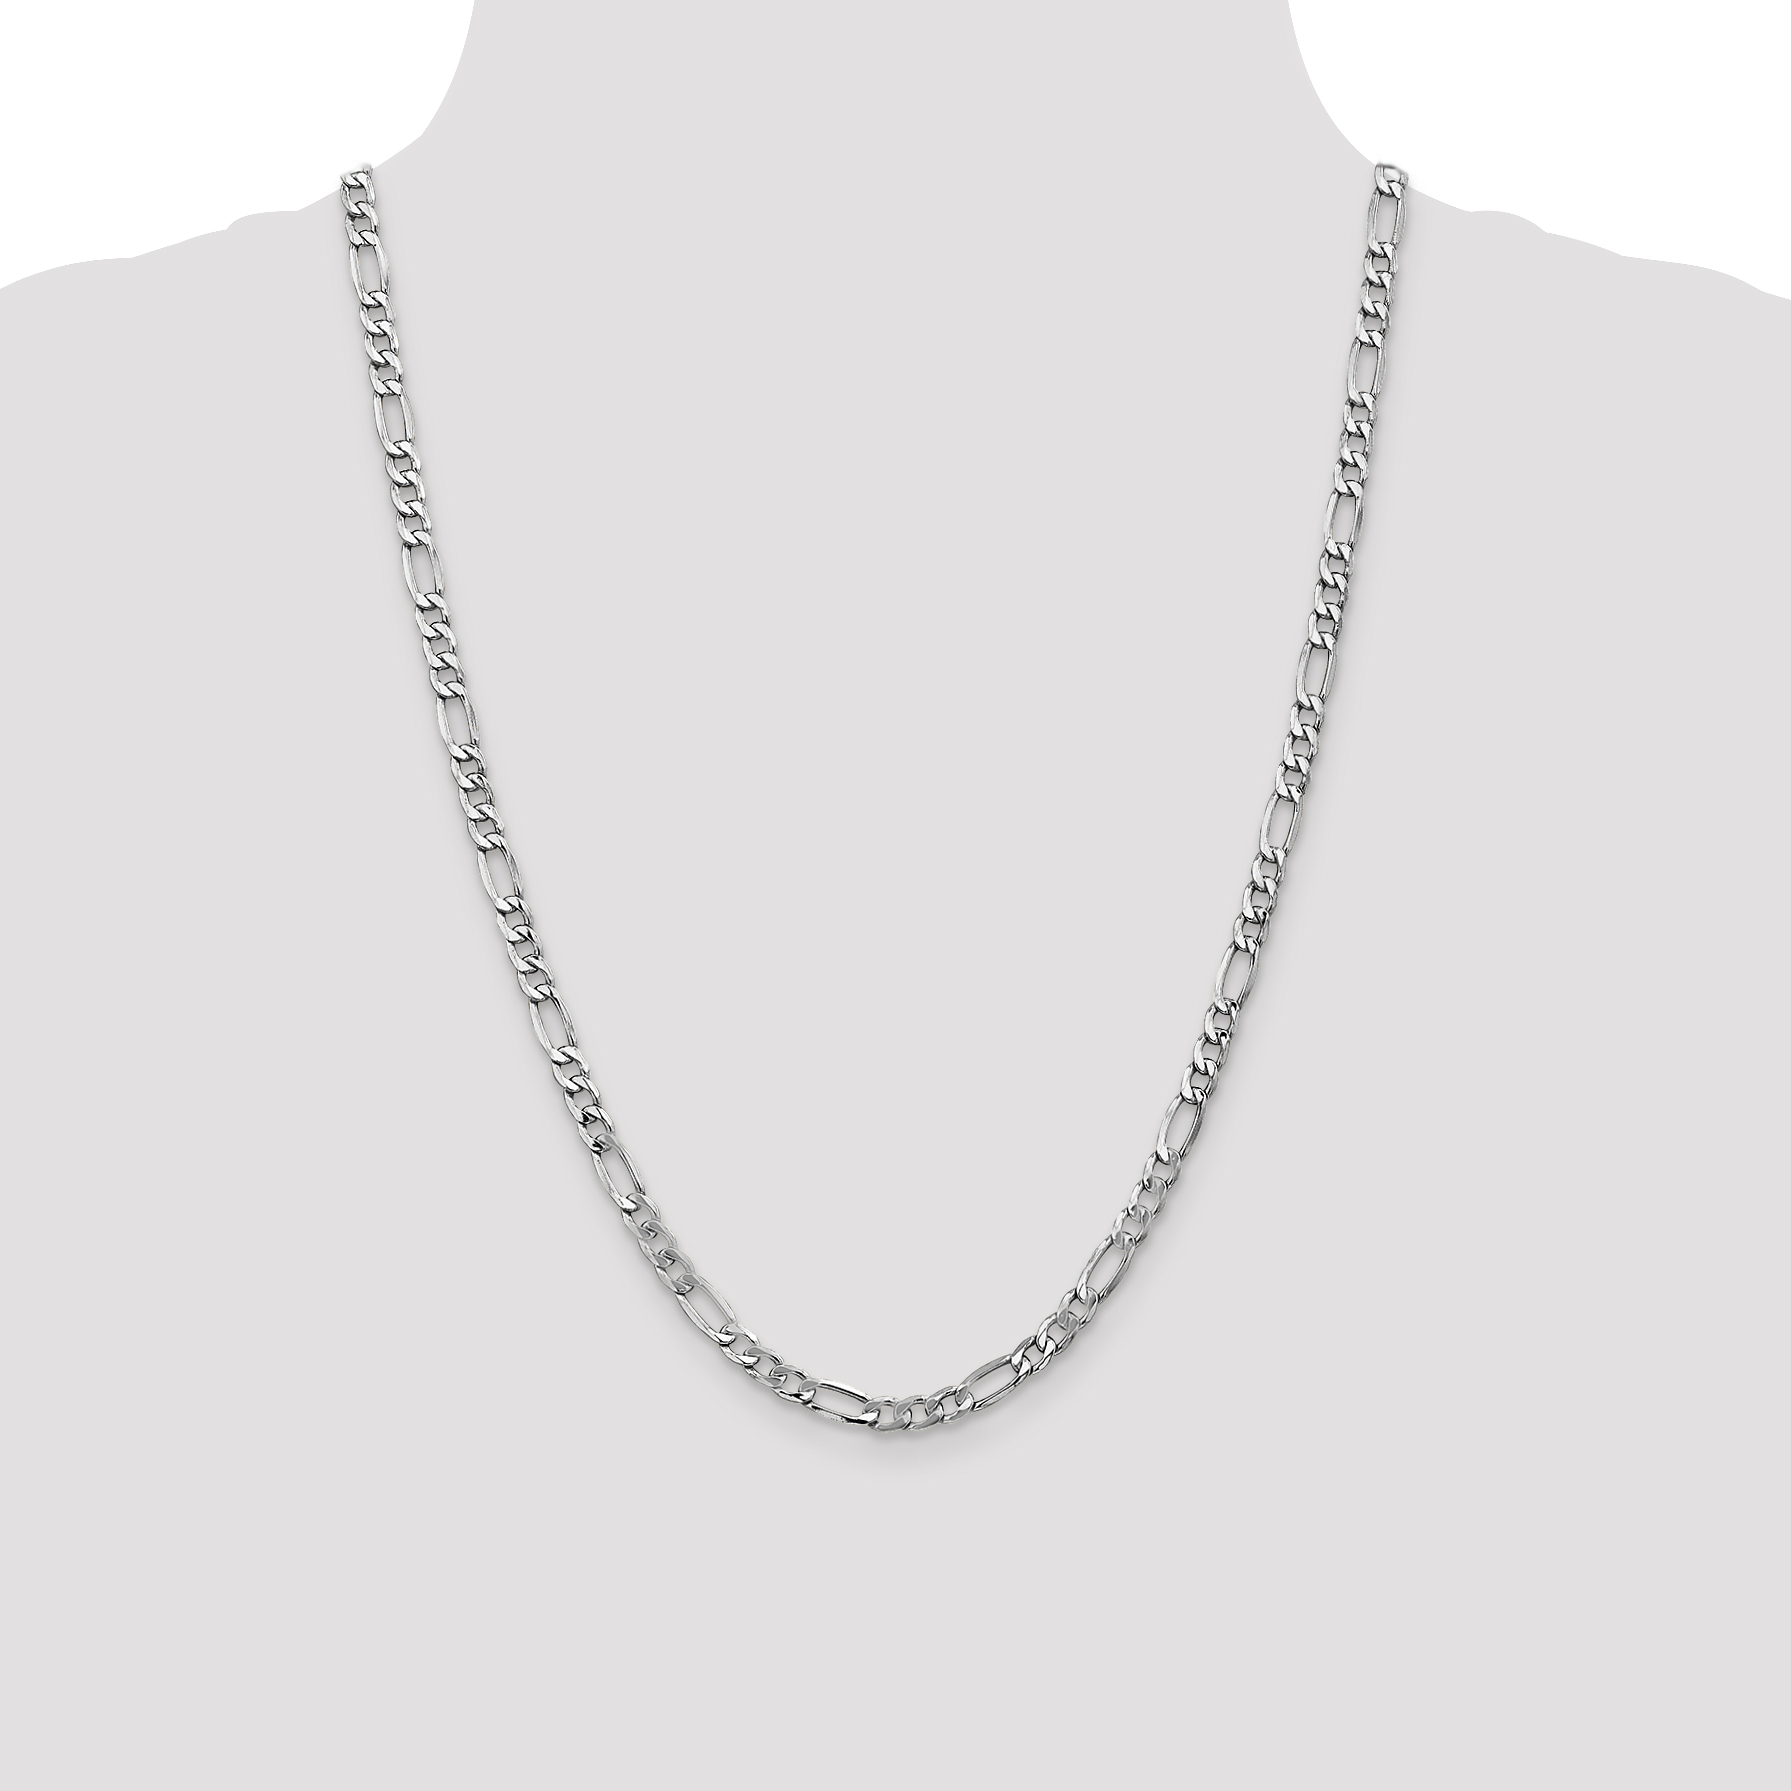 14k White Gold 5.75mm Link Figaro Chain Necklace 24 Inch Pendant Charm Fine Jewelry Gifts For Women For Her - image 1 of 5